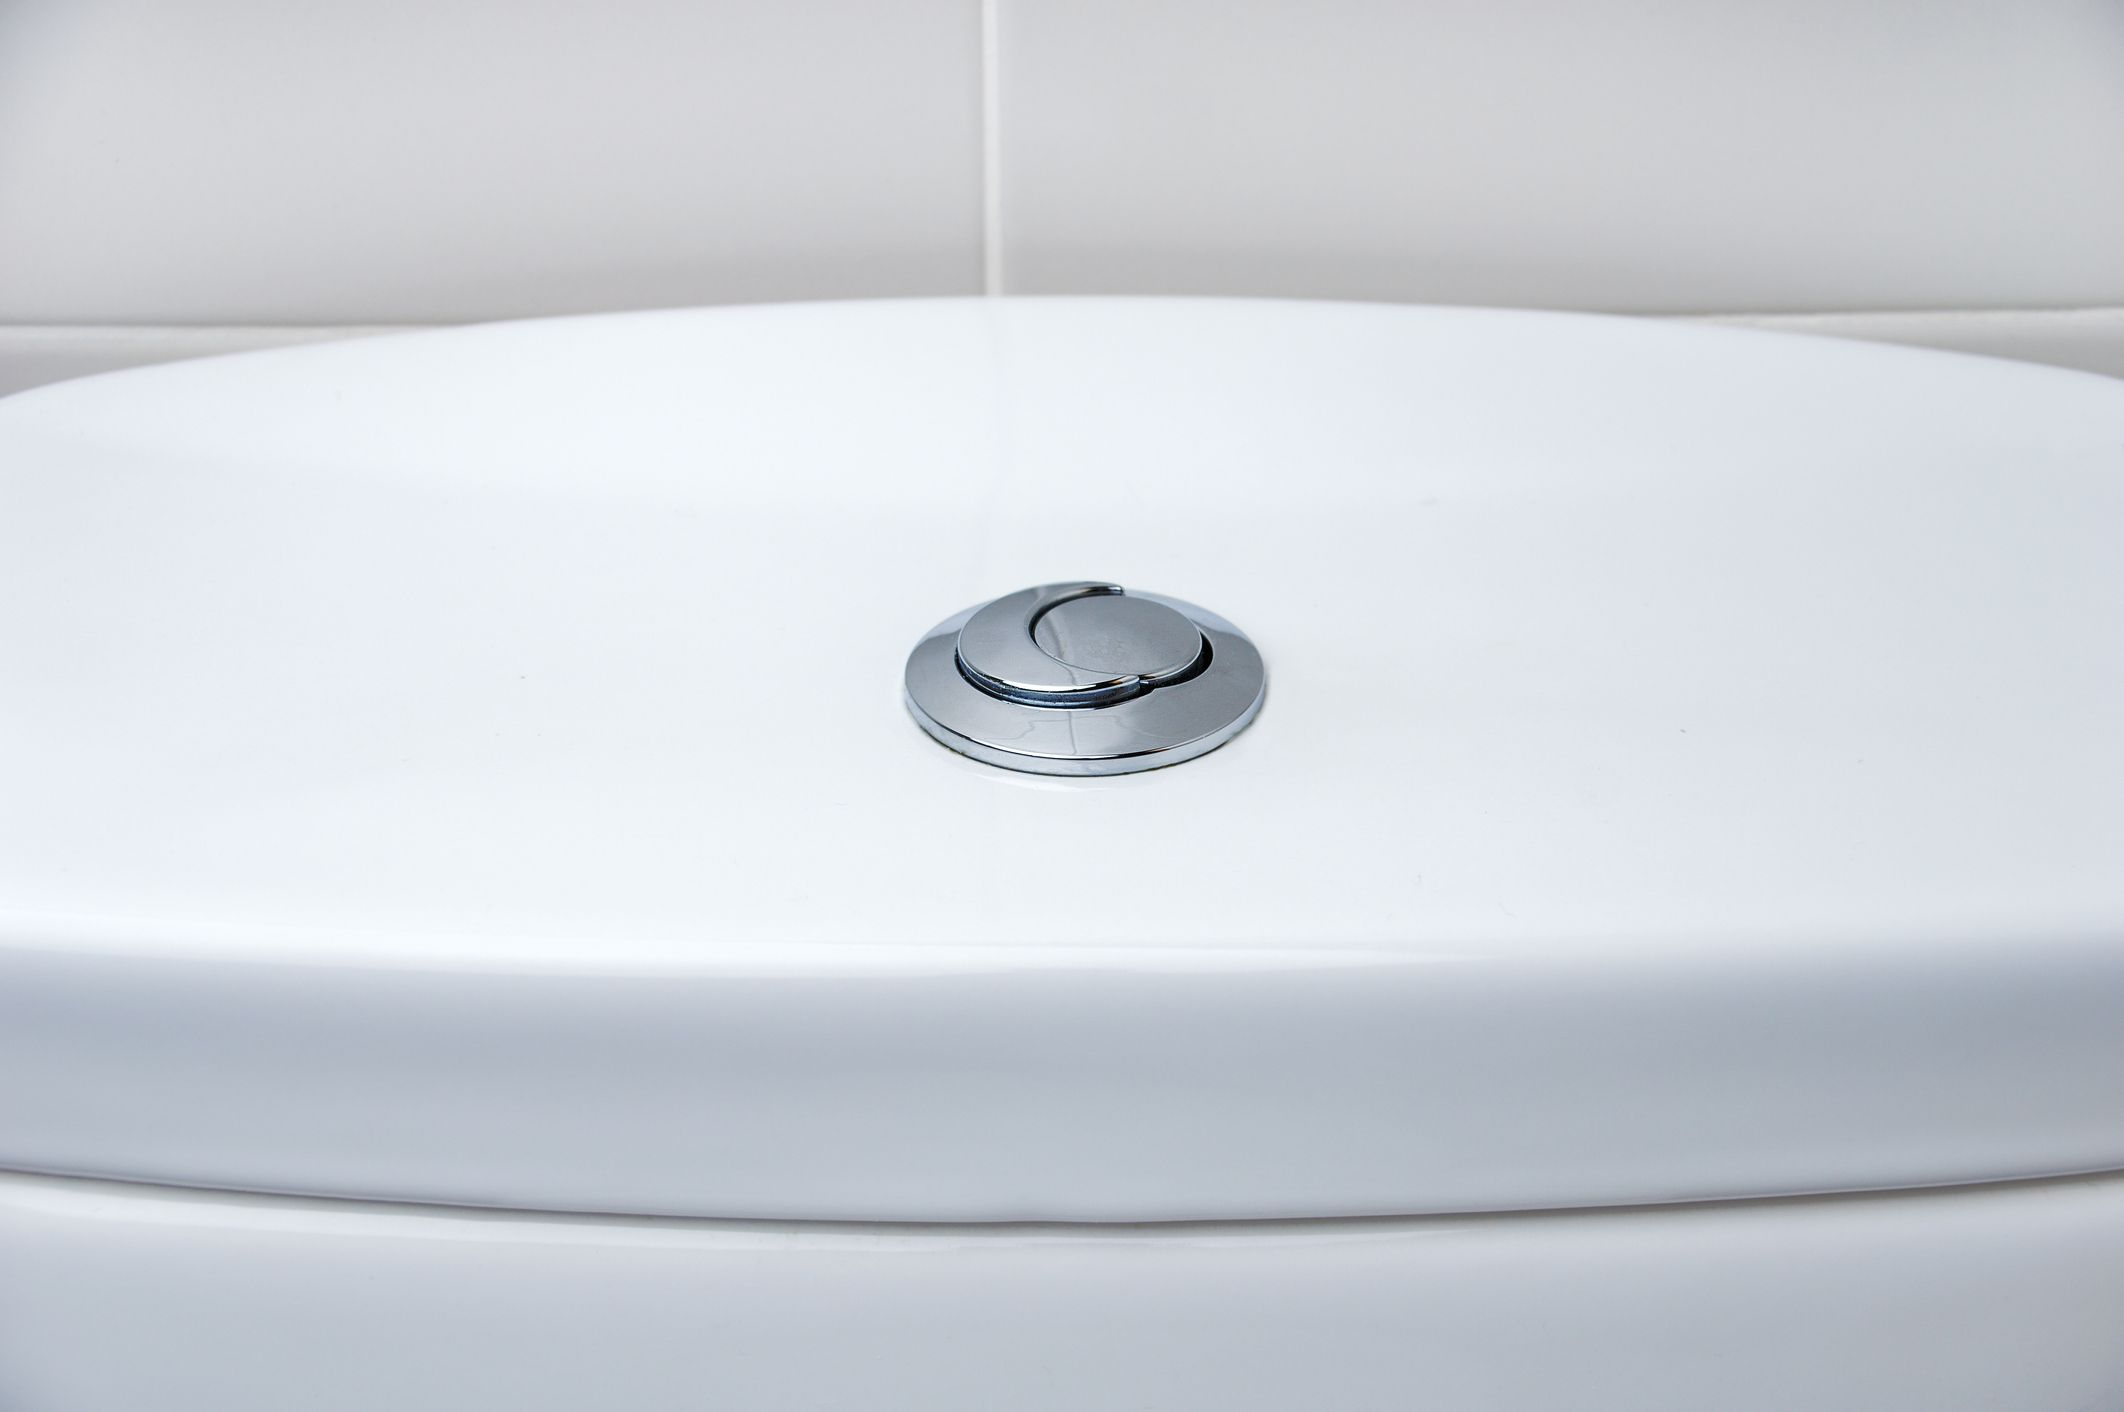 The top of a dual flush toilet.